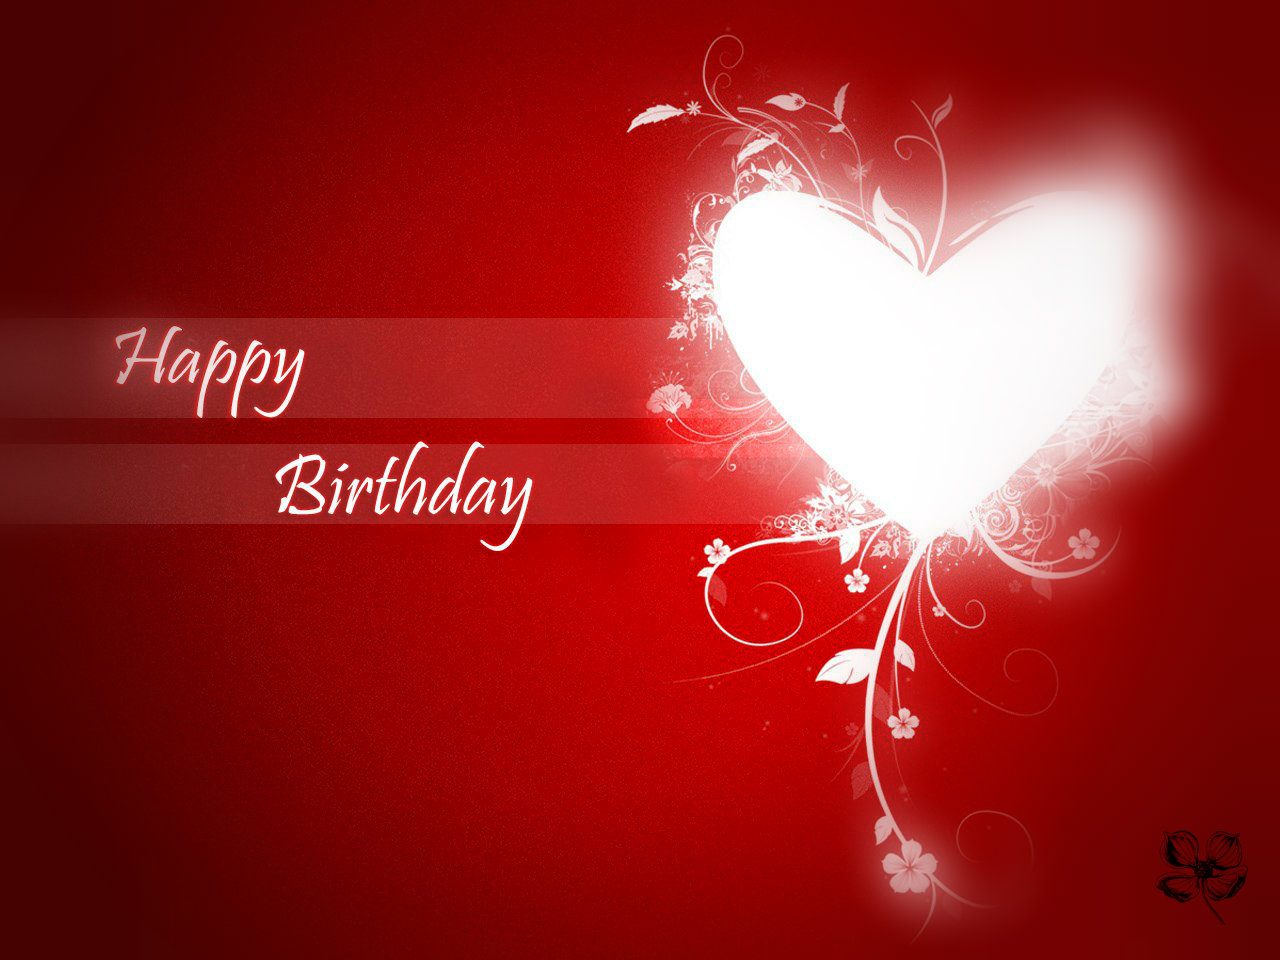 Download Wallpaper Happy Birth Day Gallery